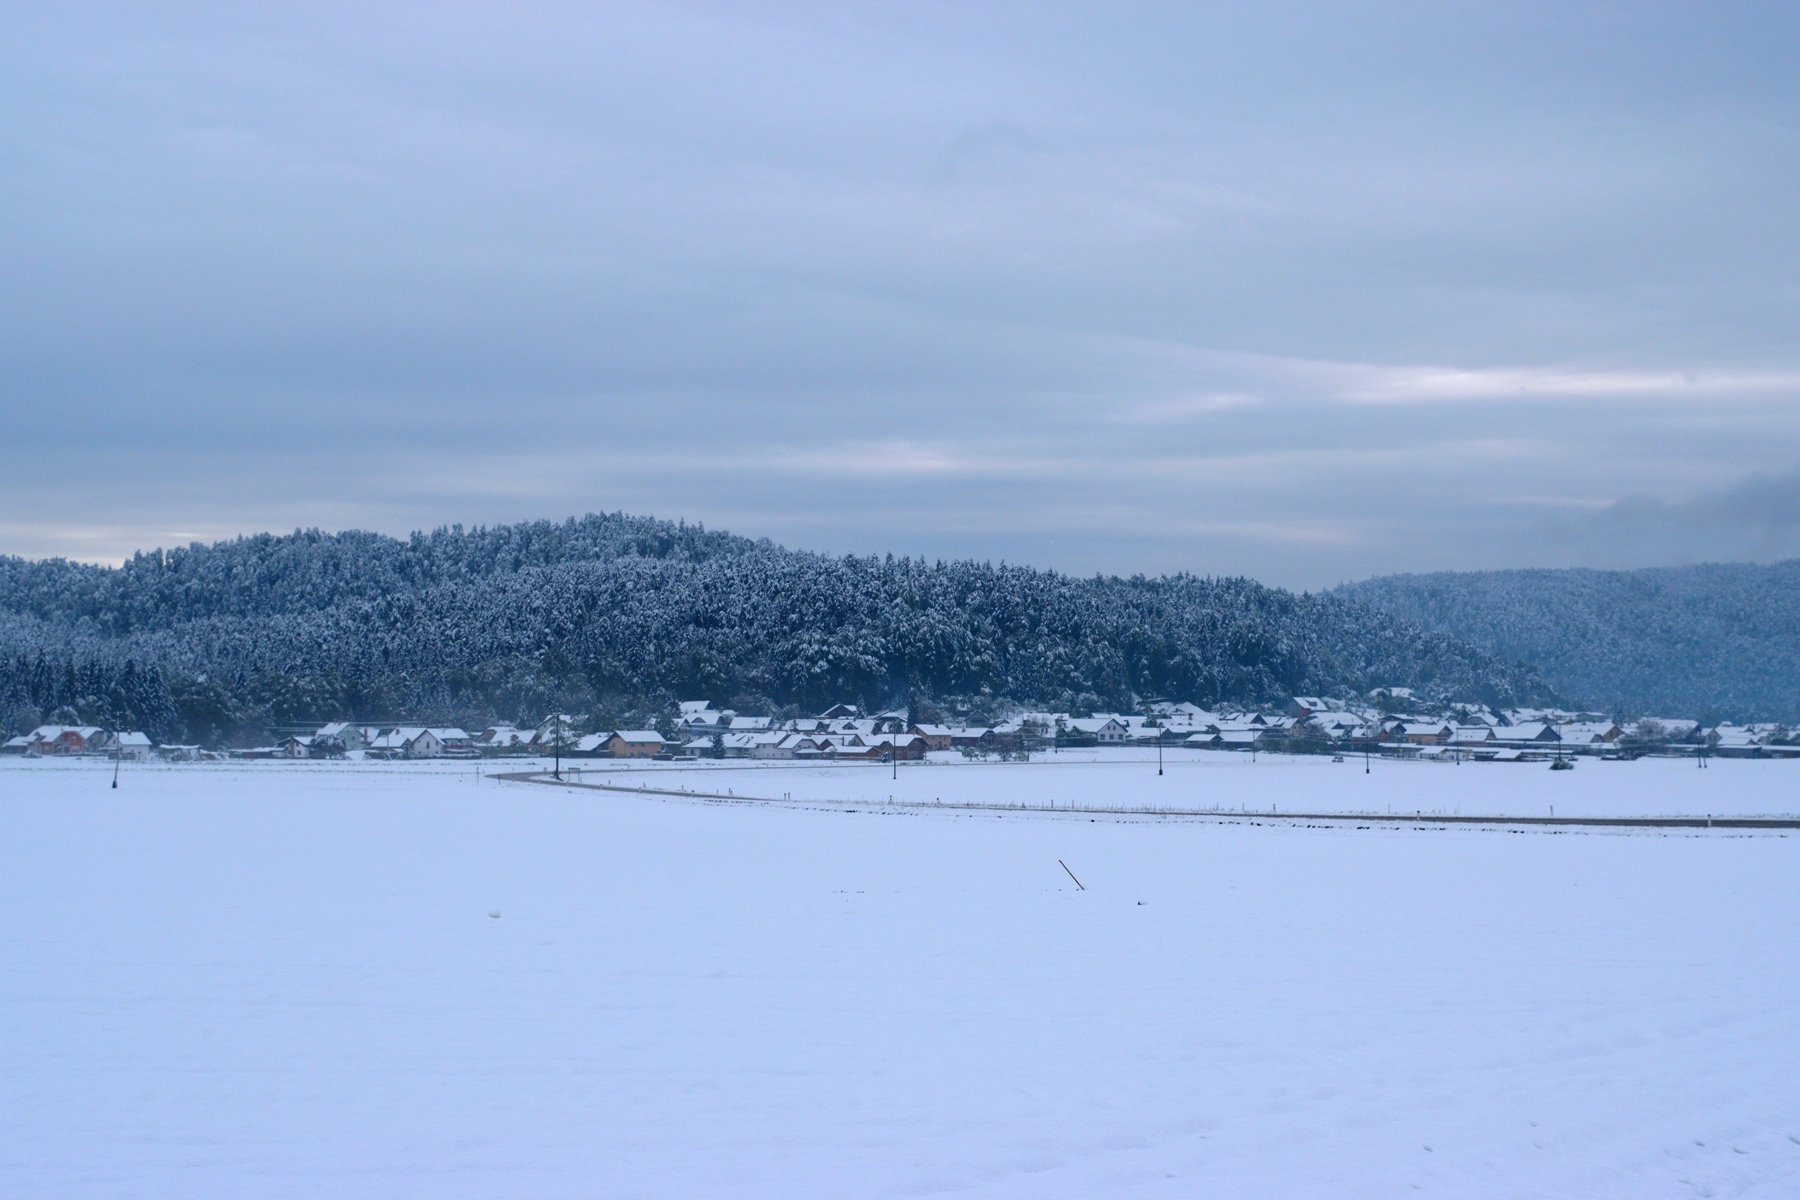 Snowy postcards from Slovenia | The Cheerful Wanderer